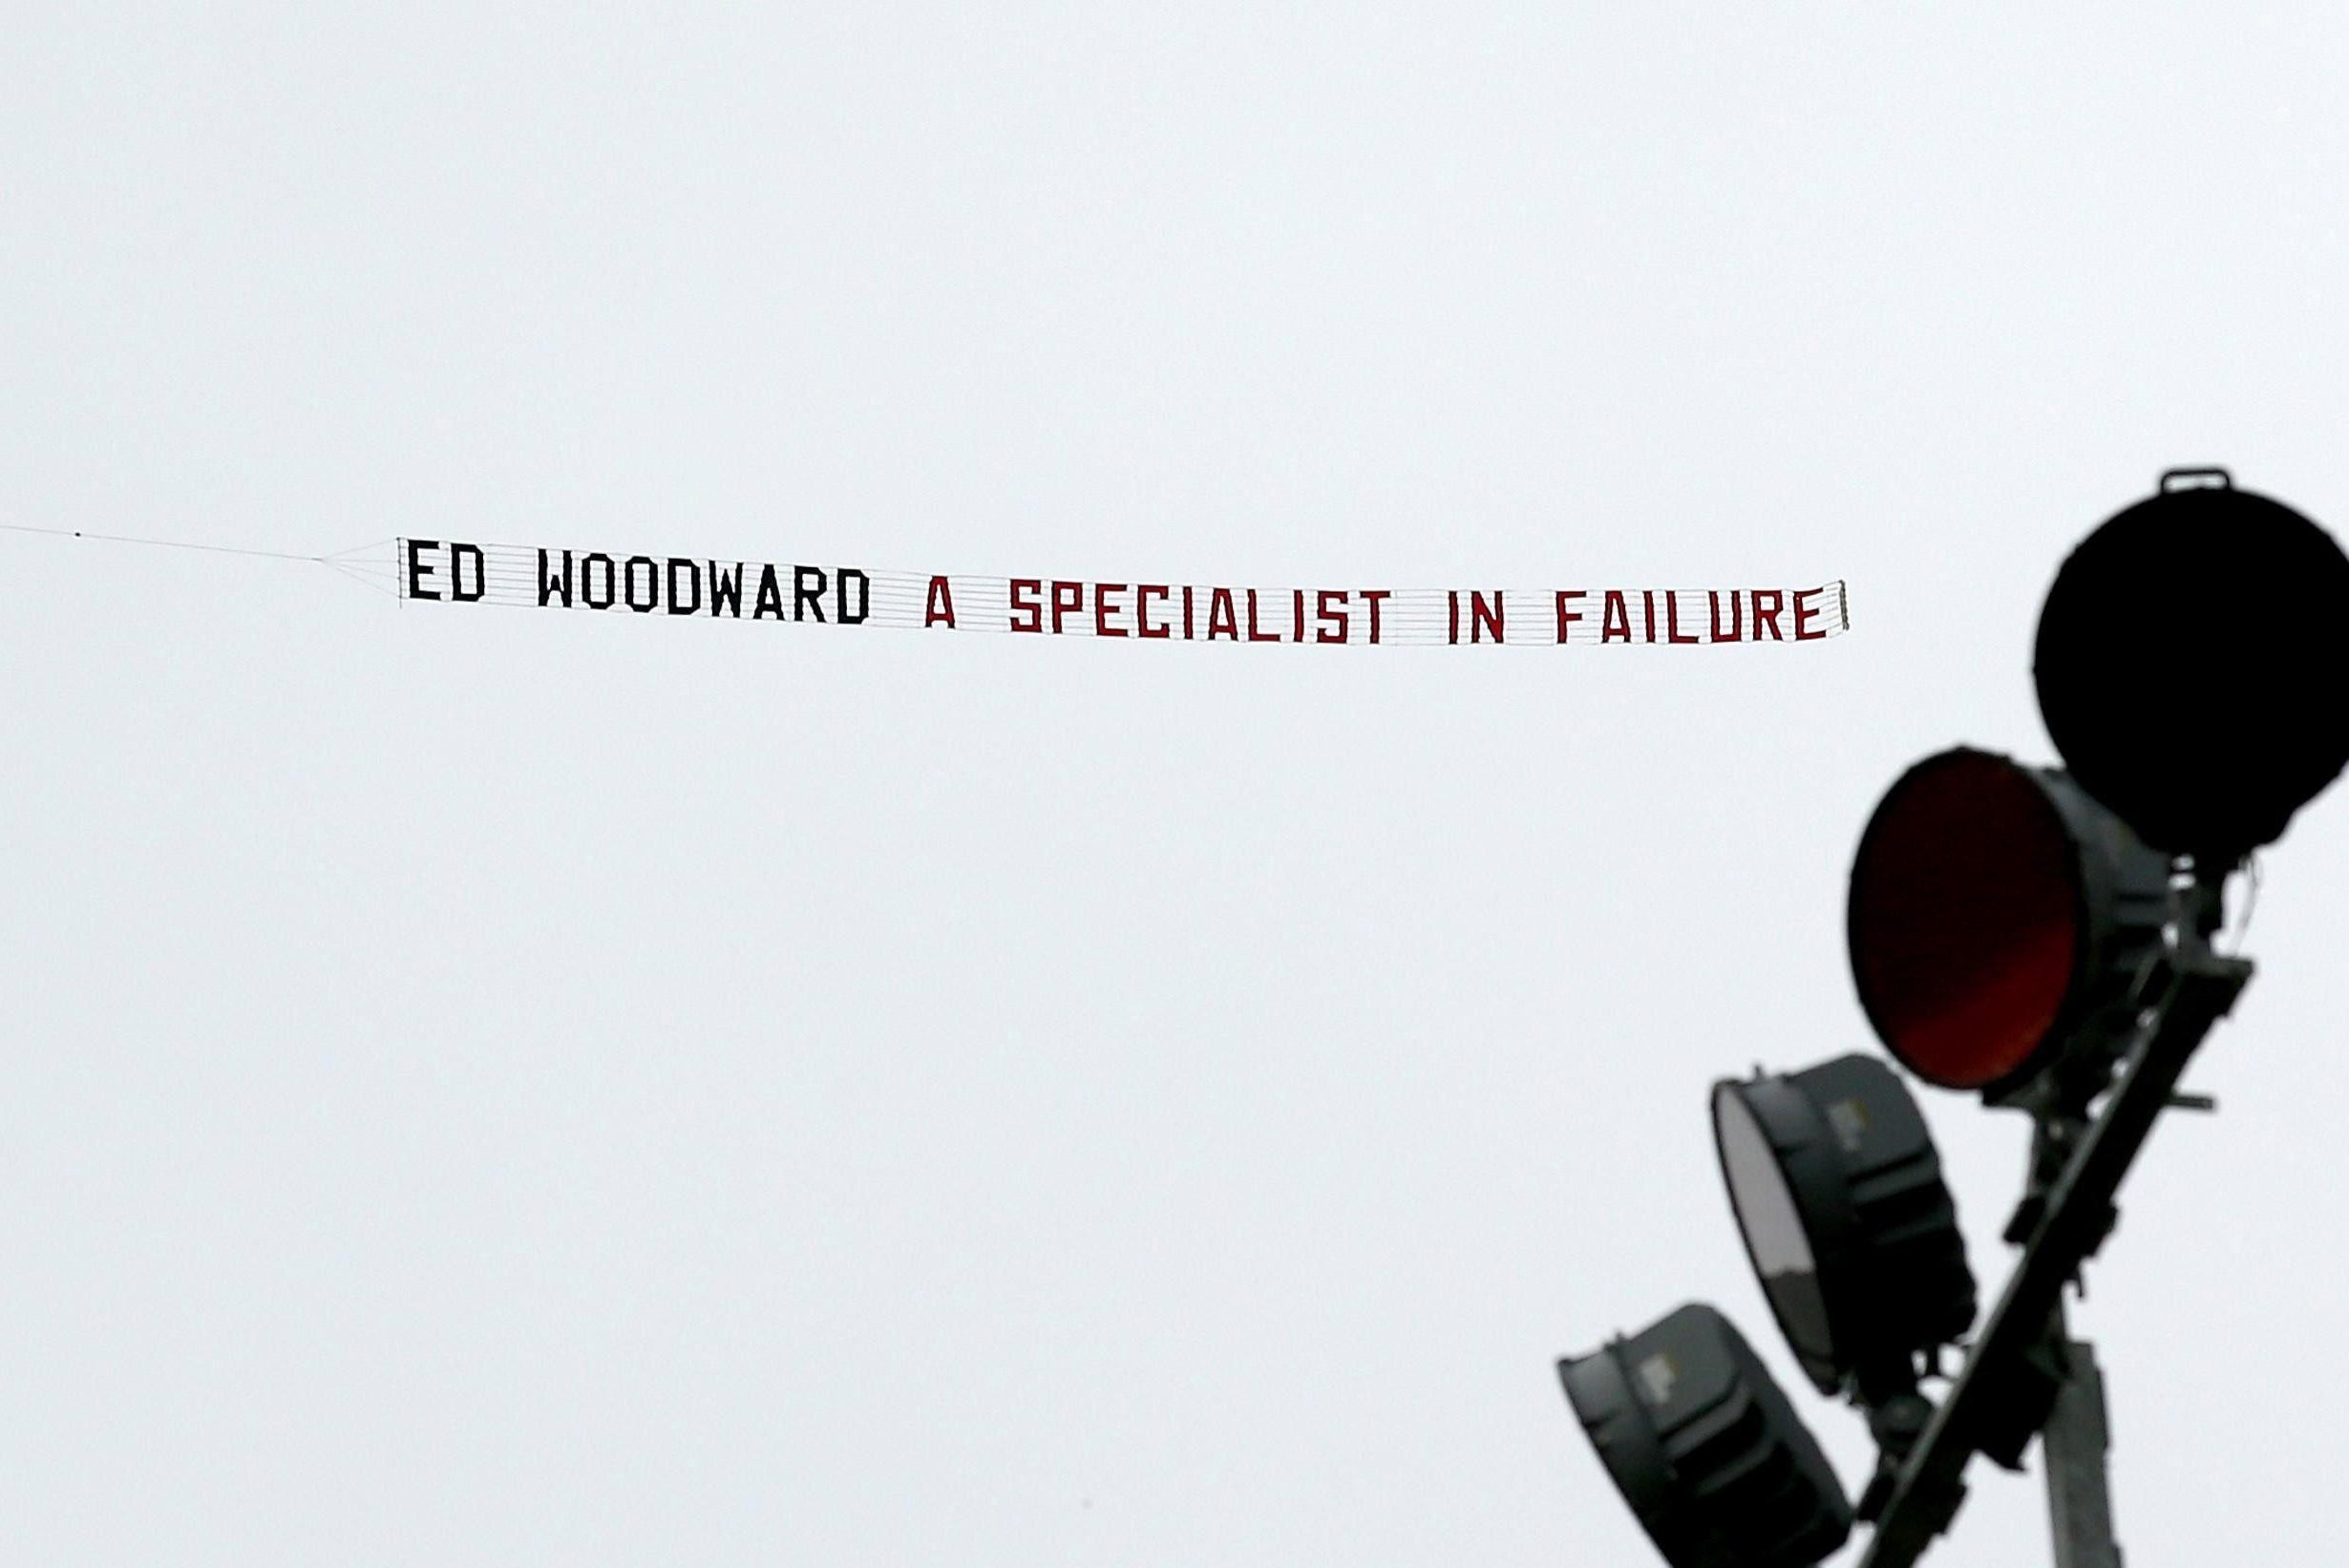 Man United fans flew a banner over Turf Moor in protest of Ed Woodward